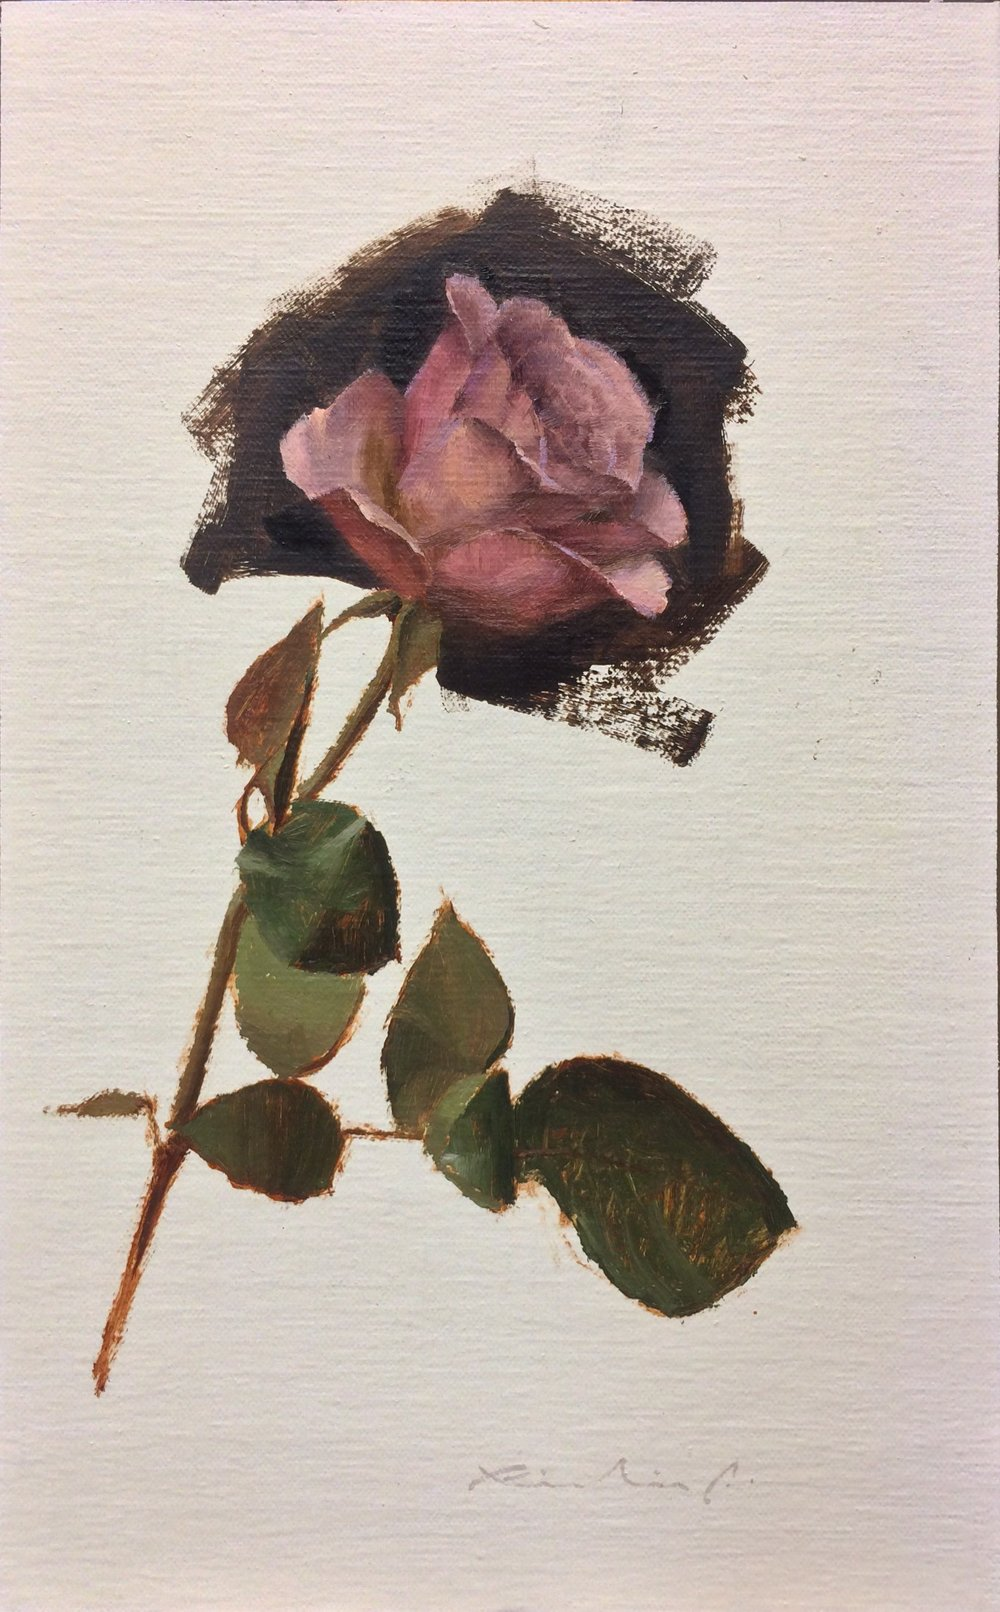 """Bed of Roses 10""  $650.00  8 x 12 inches 